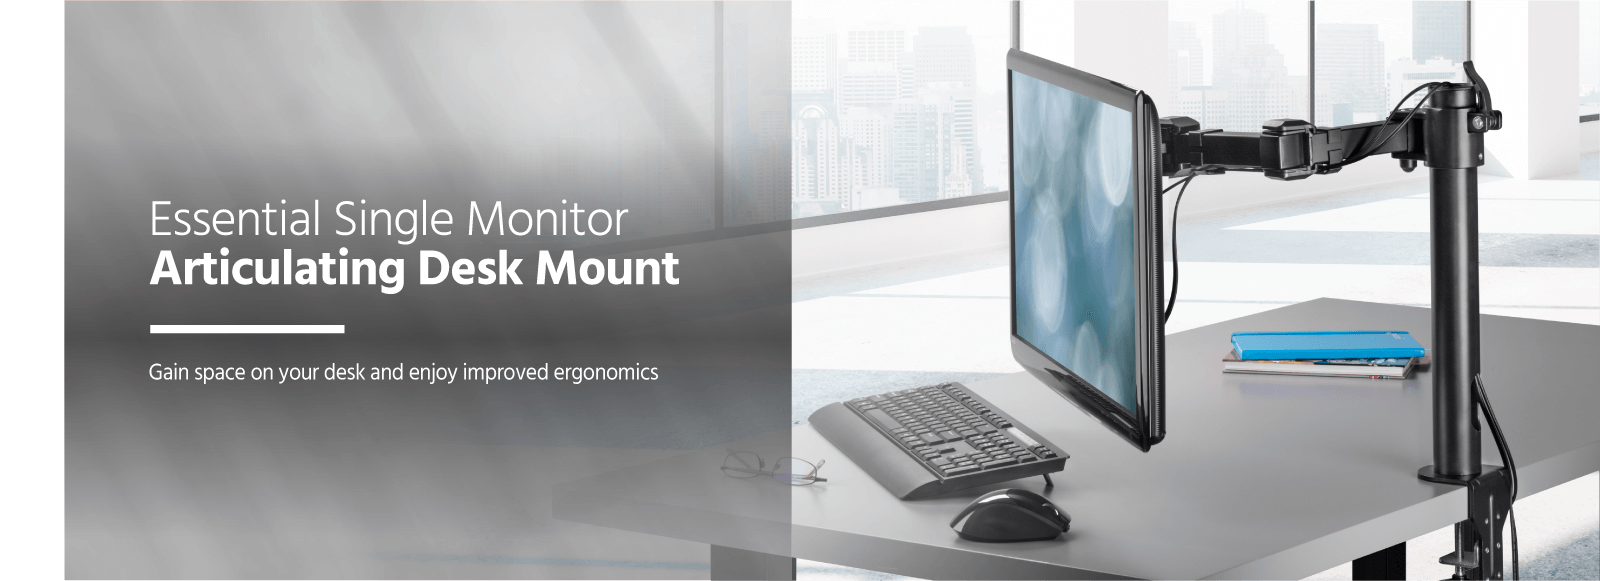 Single Monitor Articulating Desk Mount